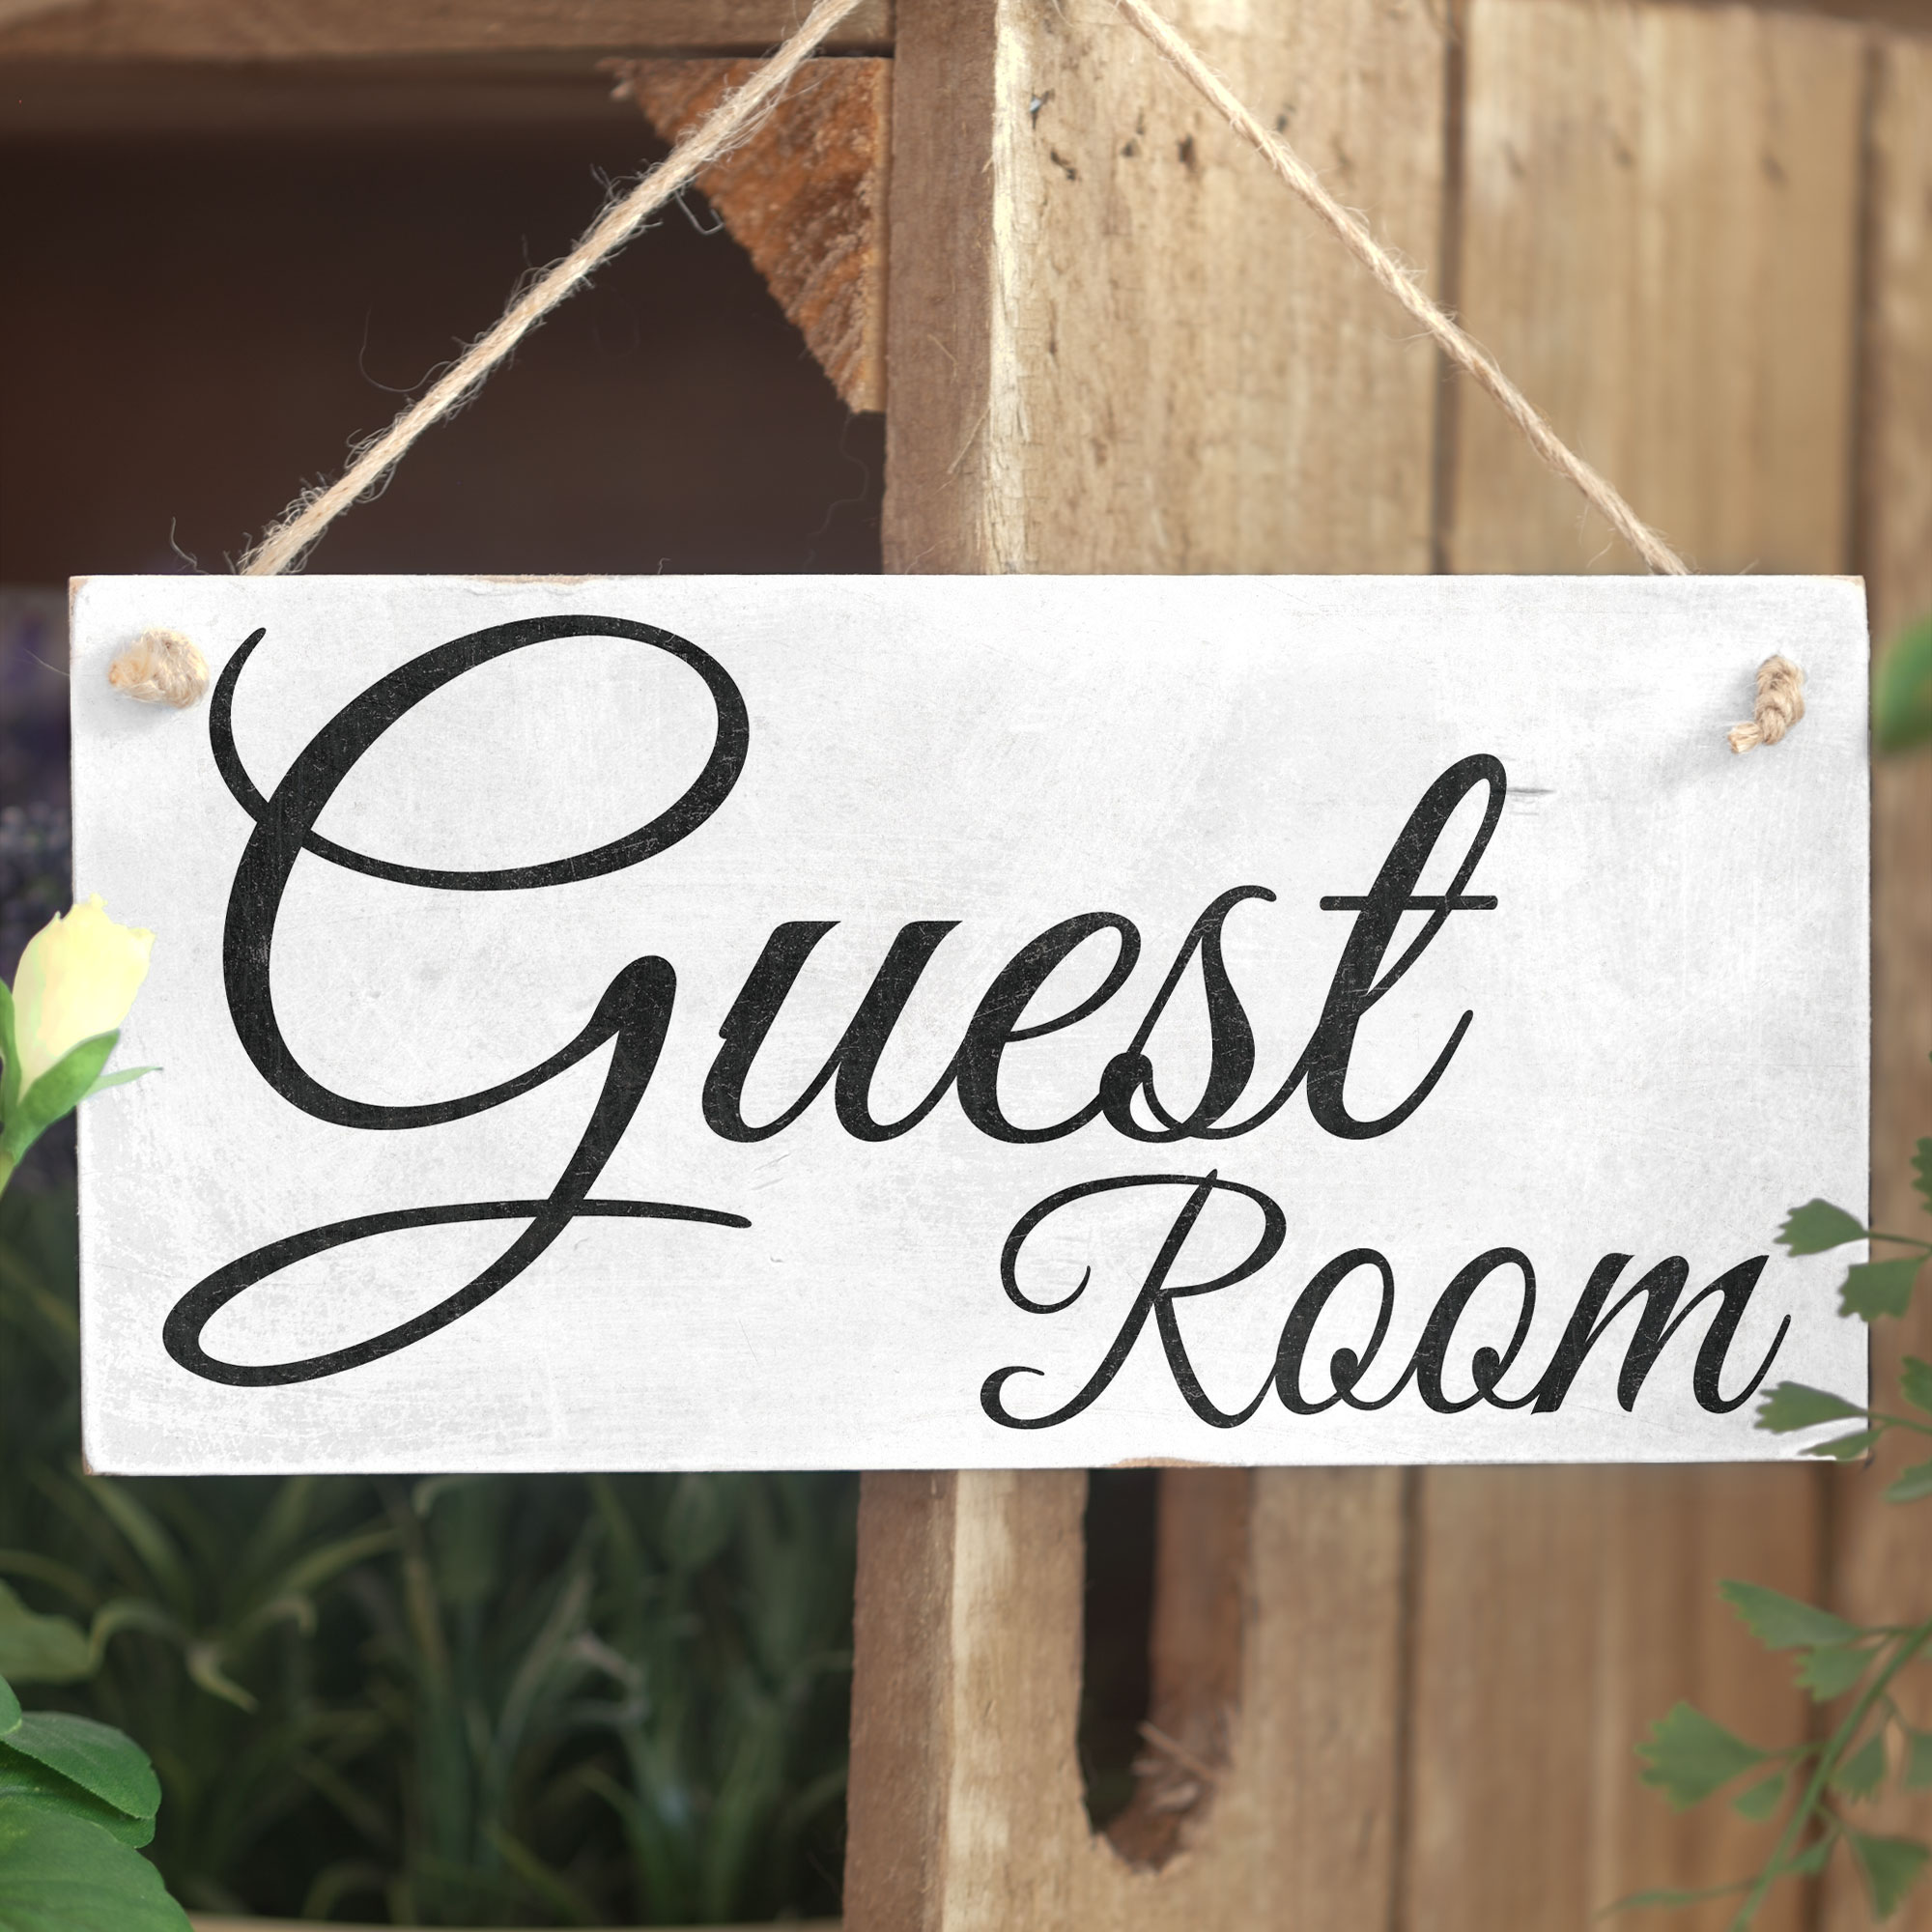 Guest Room  Handmade Shabby Chic Wooden Sign  Plaque. Ira Deduction Phase Out Java Script Developer. Chase Business Banking Fees Srp Energy Audit. Mason Rehab Wheeling Wv Bail Bonds In Anaheim. Automated Workflow Distributor. Louisiana Tech Shreveport Mtor Breast Cancer. Mfa Creative Writing Program. Best Rate Money Market Degree In Pharmacology. English Teaching Universities In Germany